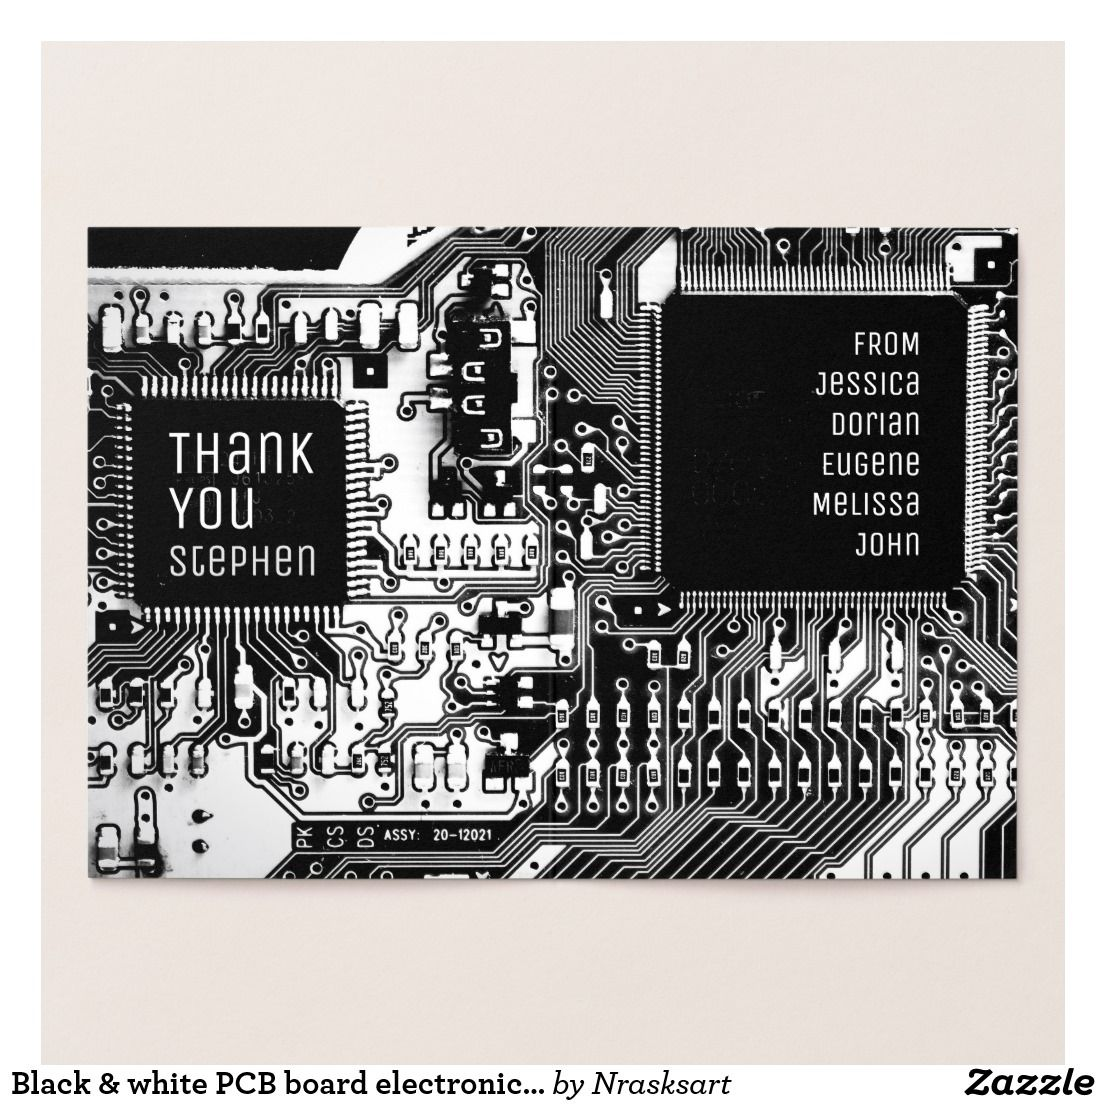 Black White Pcb Board Electronic Printed Circuit Foil Card Zazzle Com In 2020 Scripture Typography Black And White